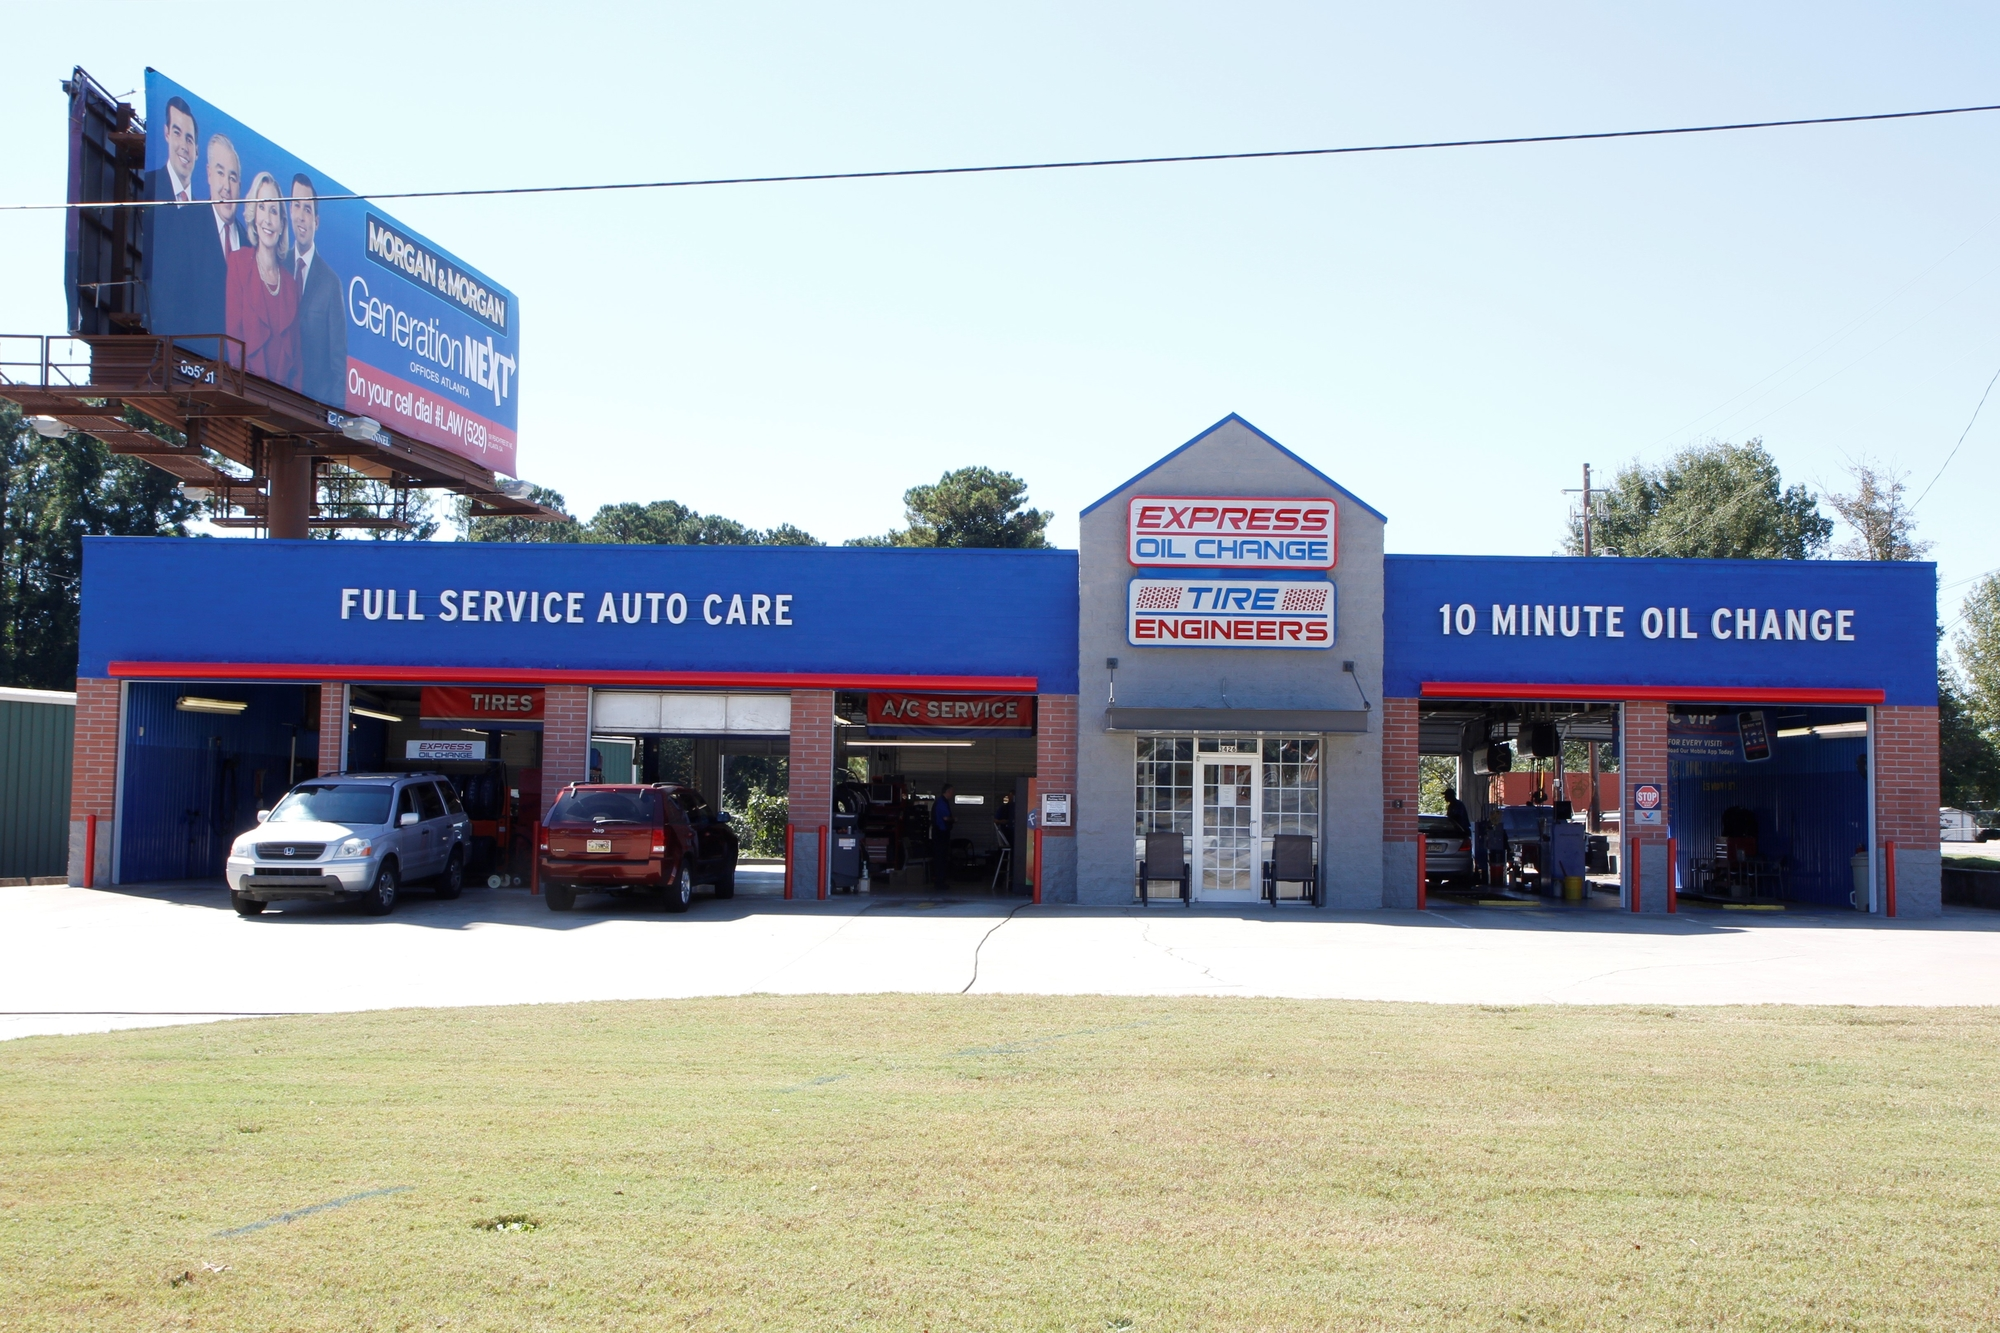 Express Oil Change & Tire Engineers Smyrna, GA - South Cobb Drive store